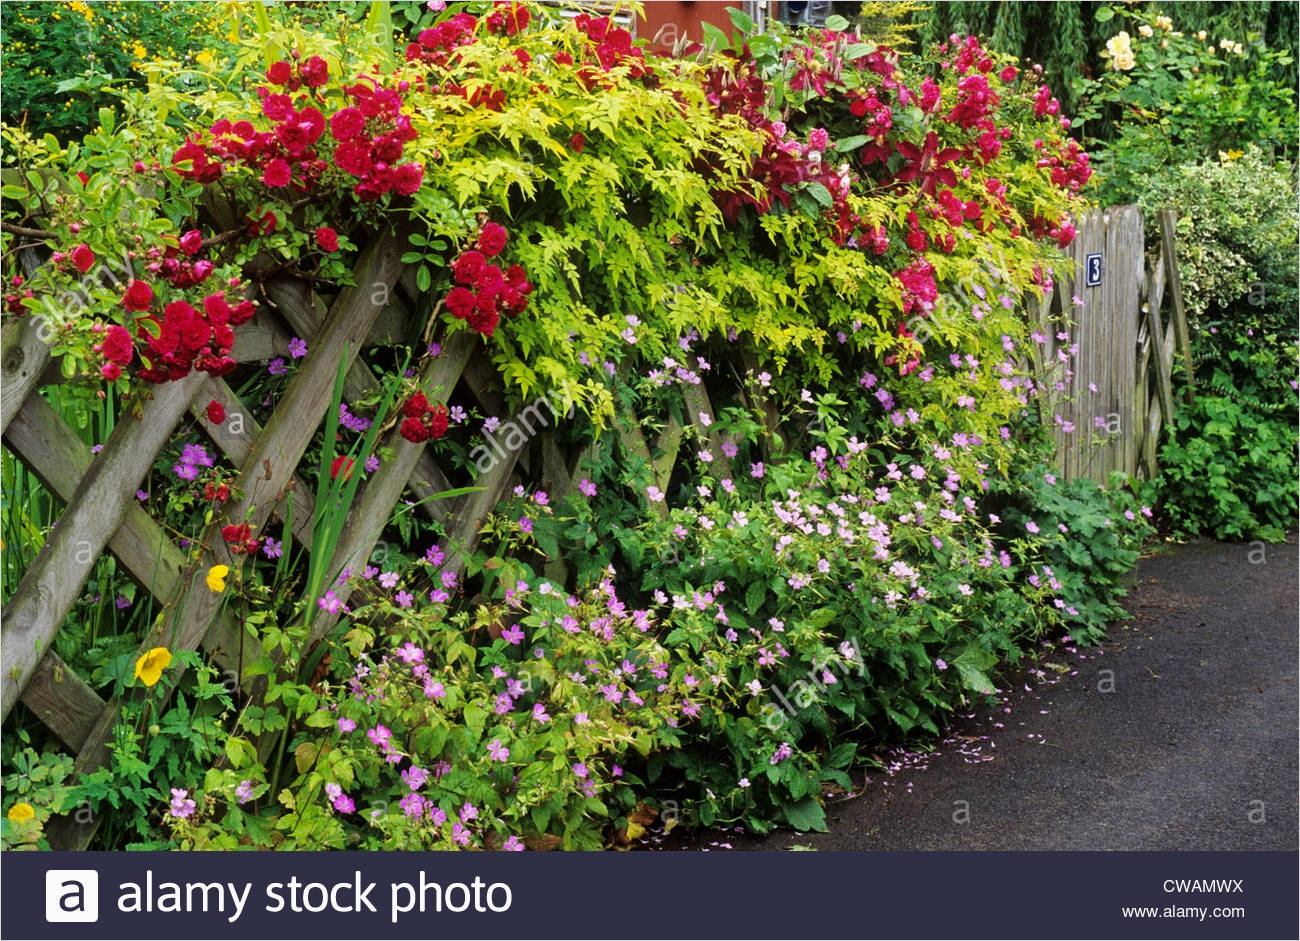 40 Best and Beautiful Climbing Flowers for Fences 22 Trellis with Climbing Roses Front Garden Picket Fence Red Rose Stock Royalty Free Image 3